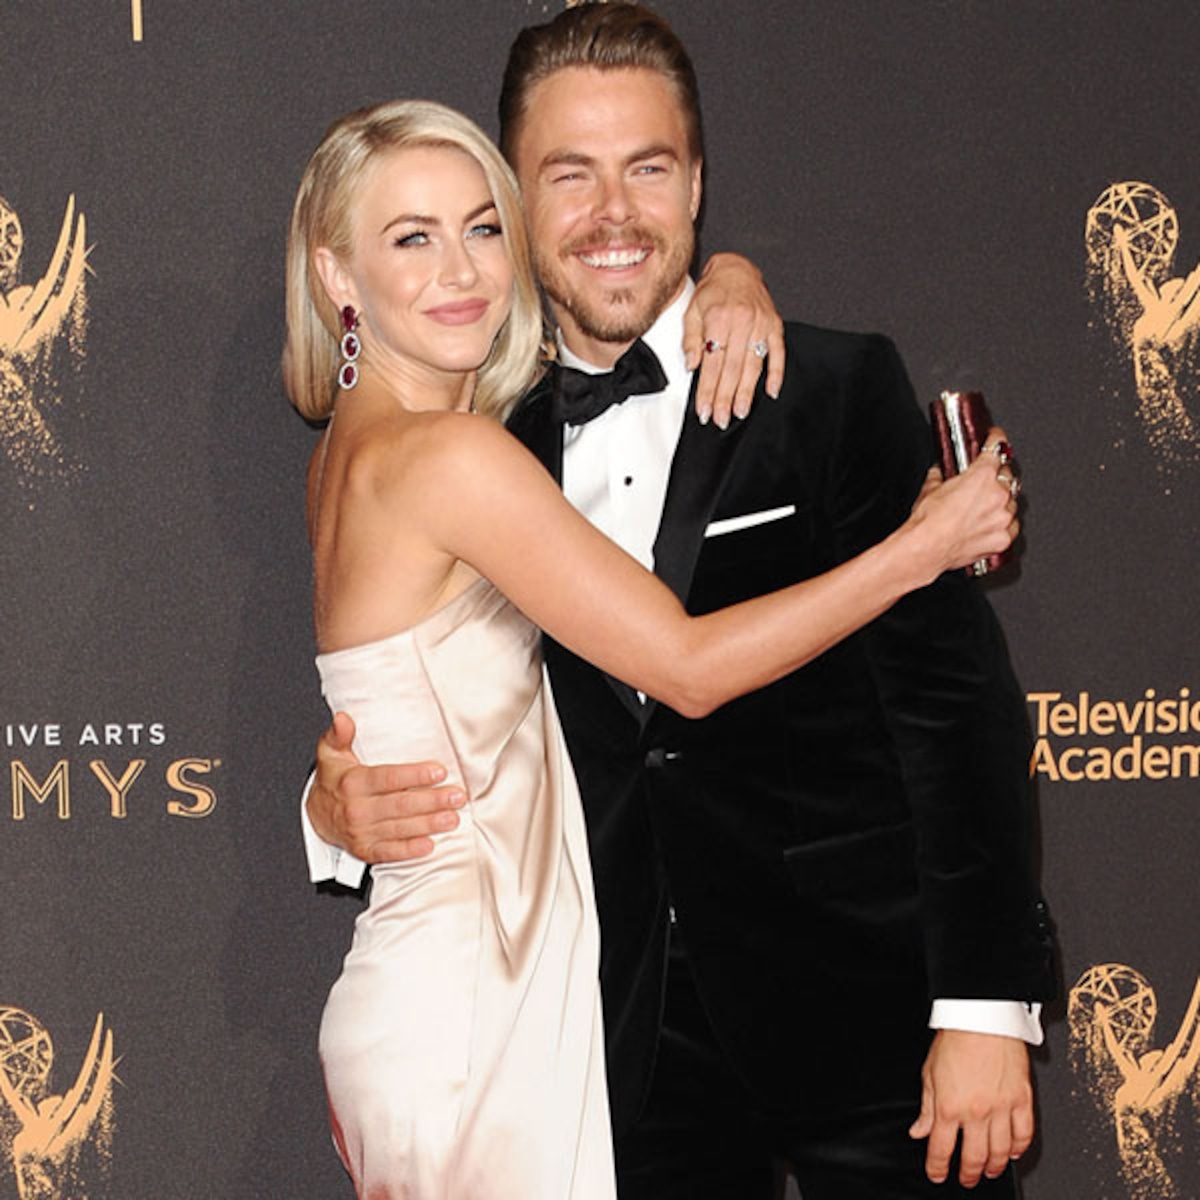 Derek Julianne Hough Promise Death Defying Moves In